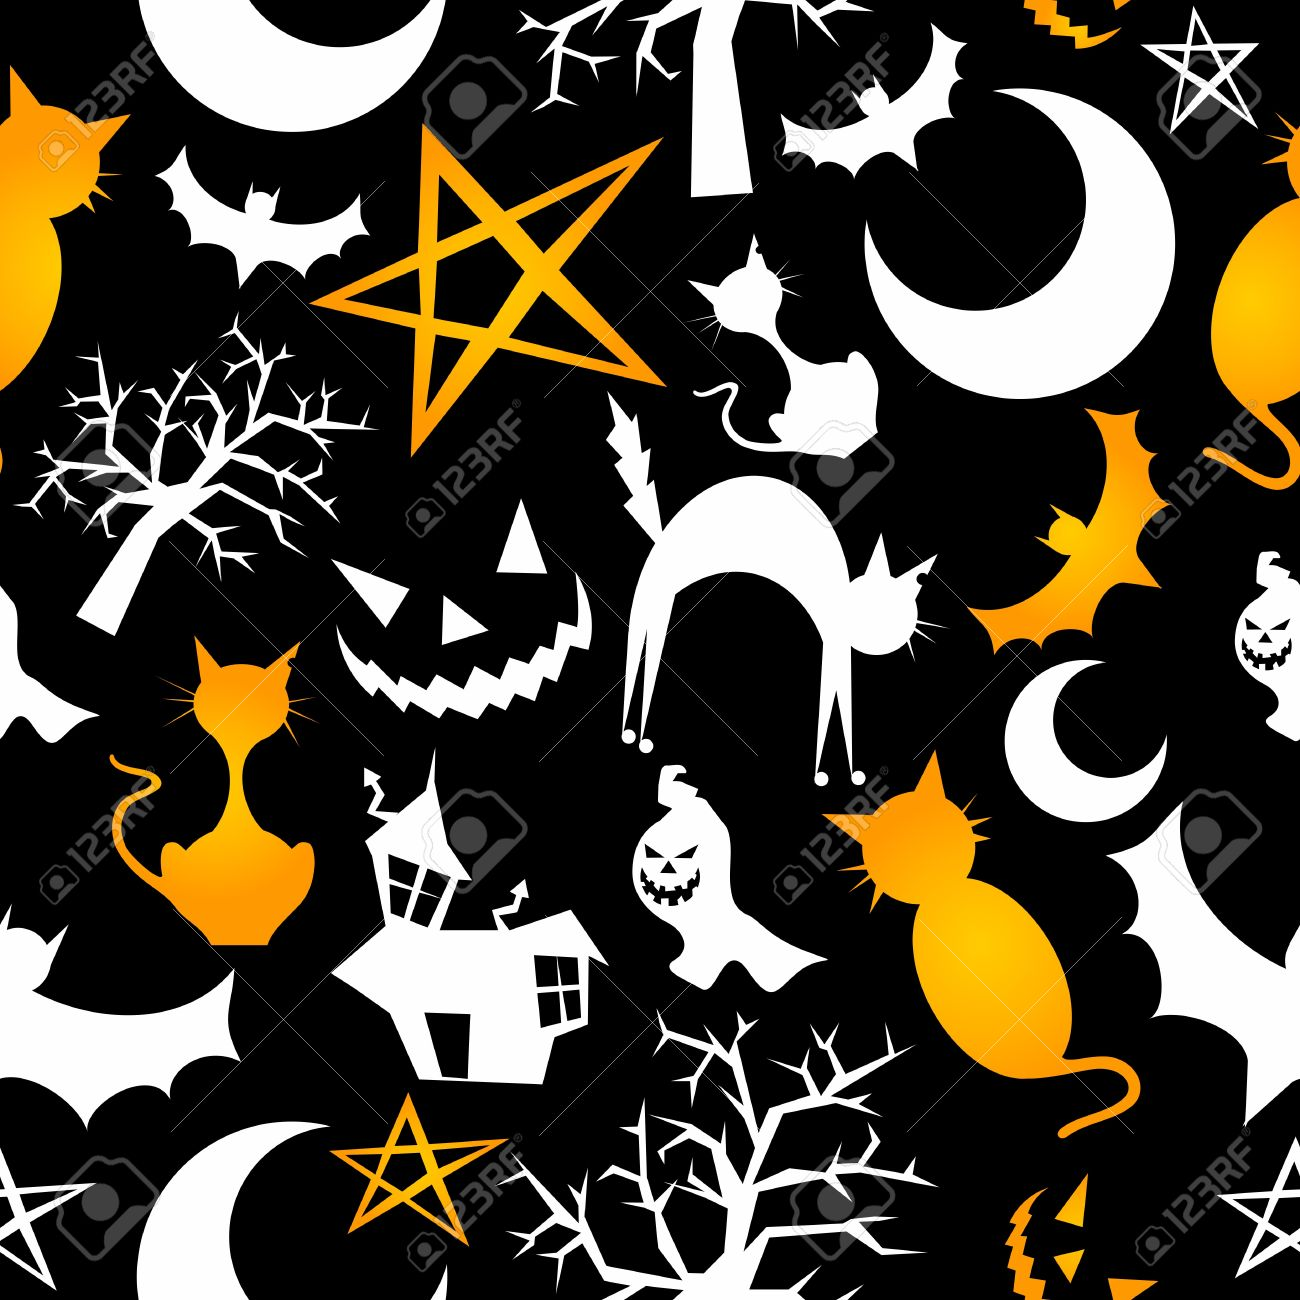 Funny halloween characters seamless pattern background. Vector illustration layered for easy manipulation and custom coloring. Stock Vector - 14777608